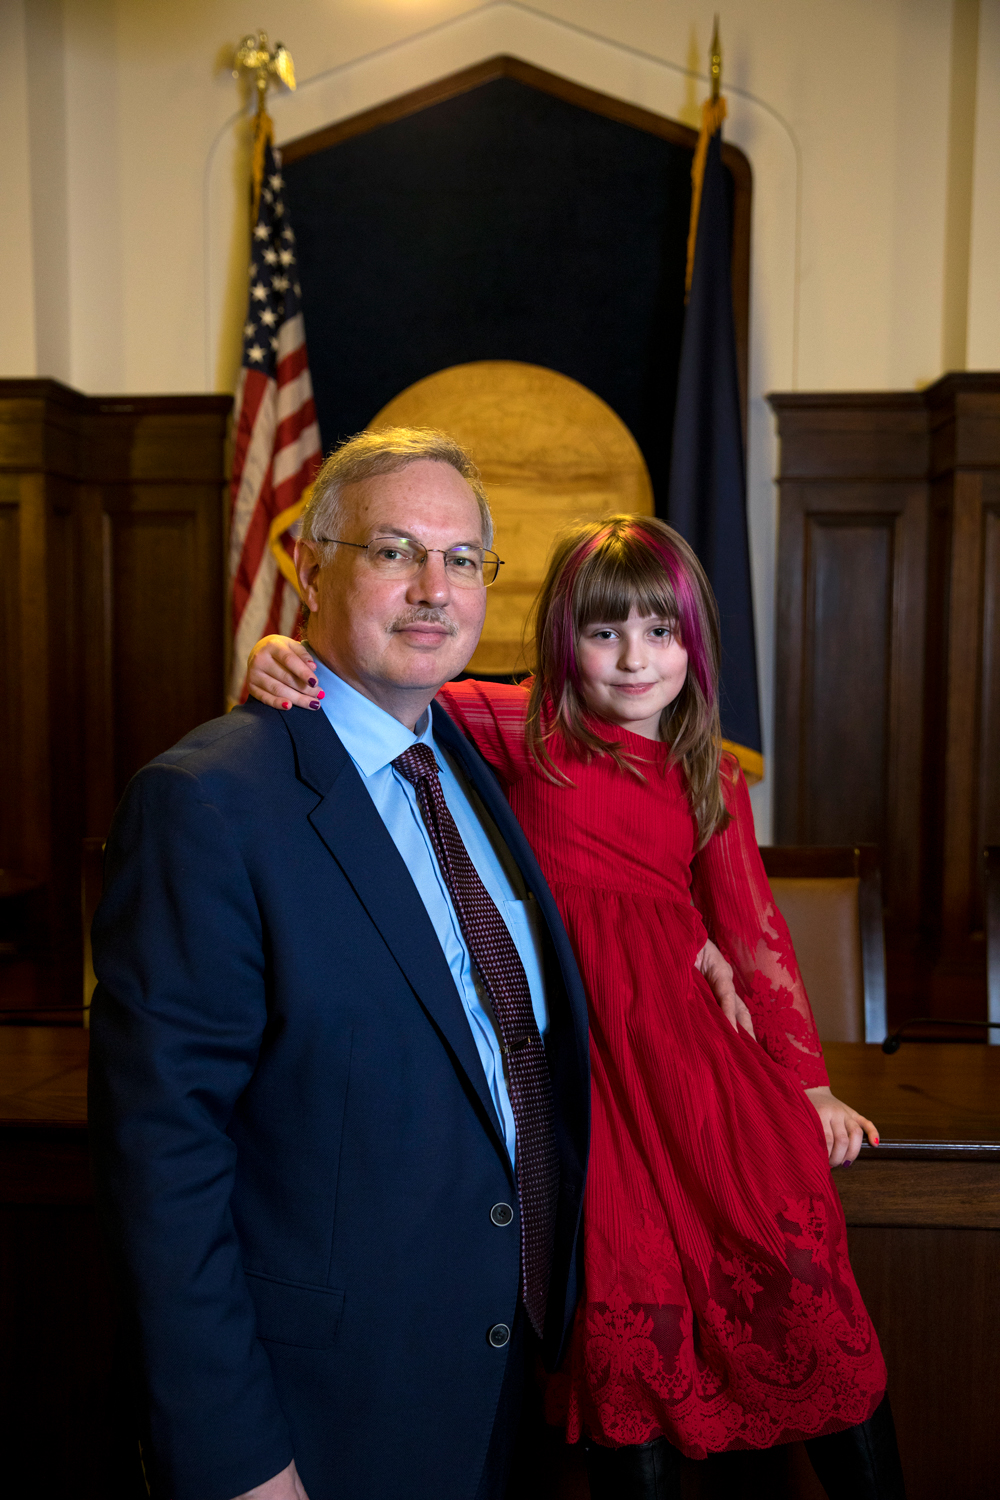 Bryce Edgmon, Speaker of the House, House Representative District 37, and his daughter, Emma